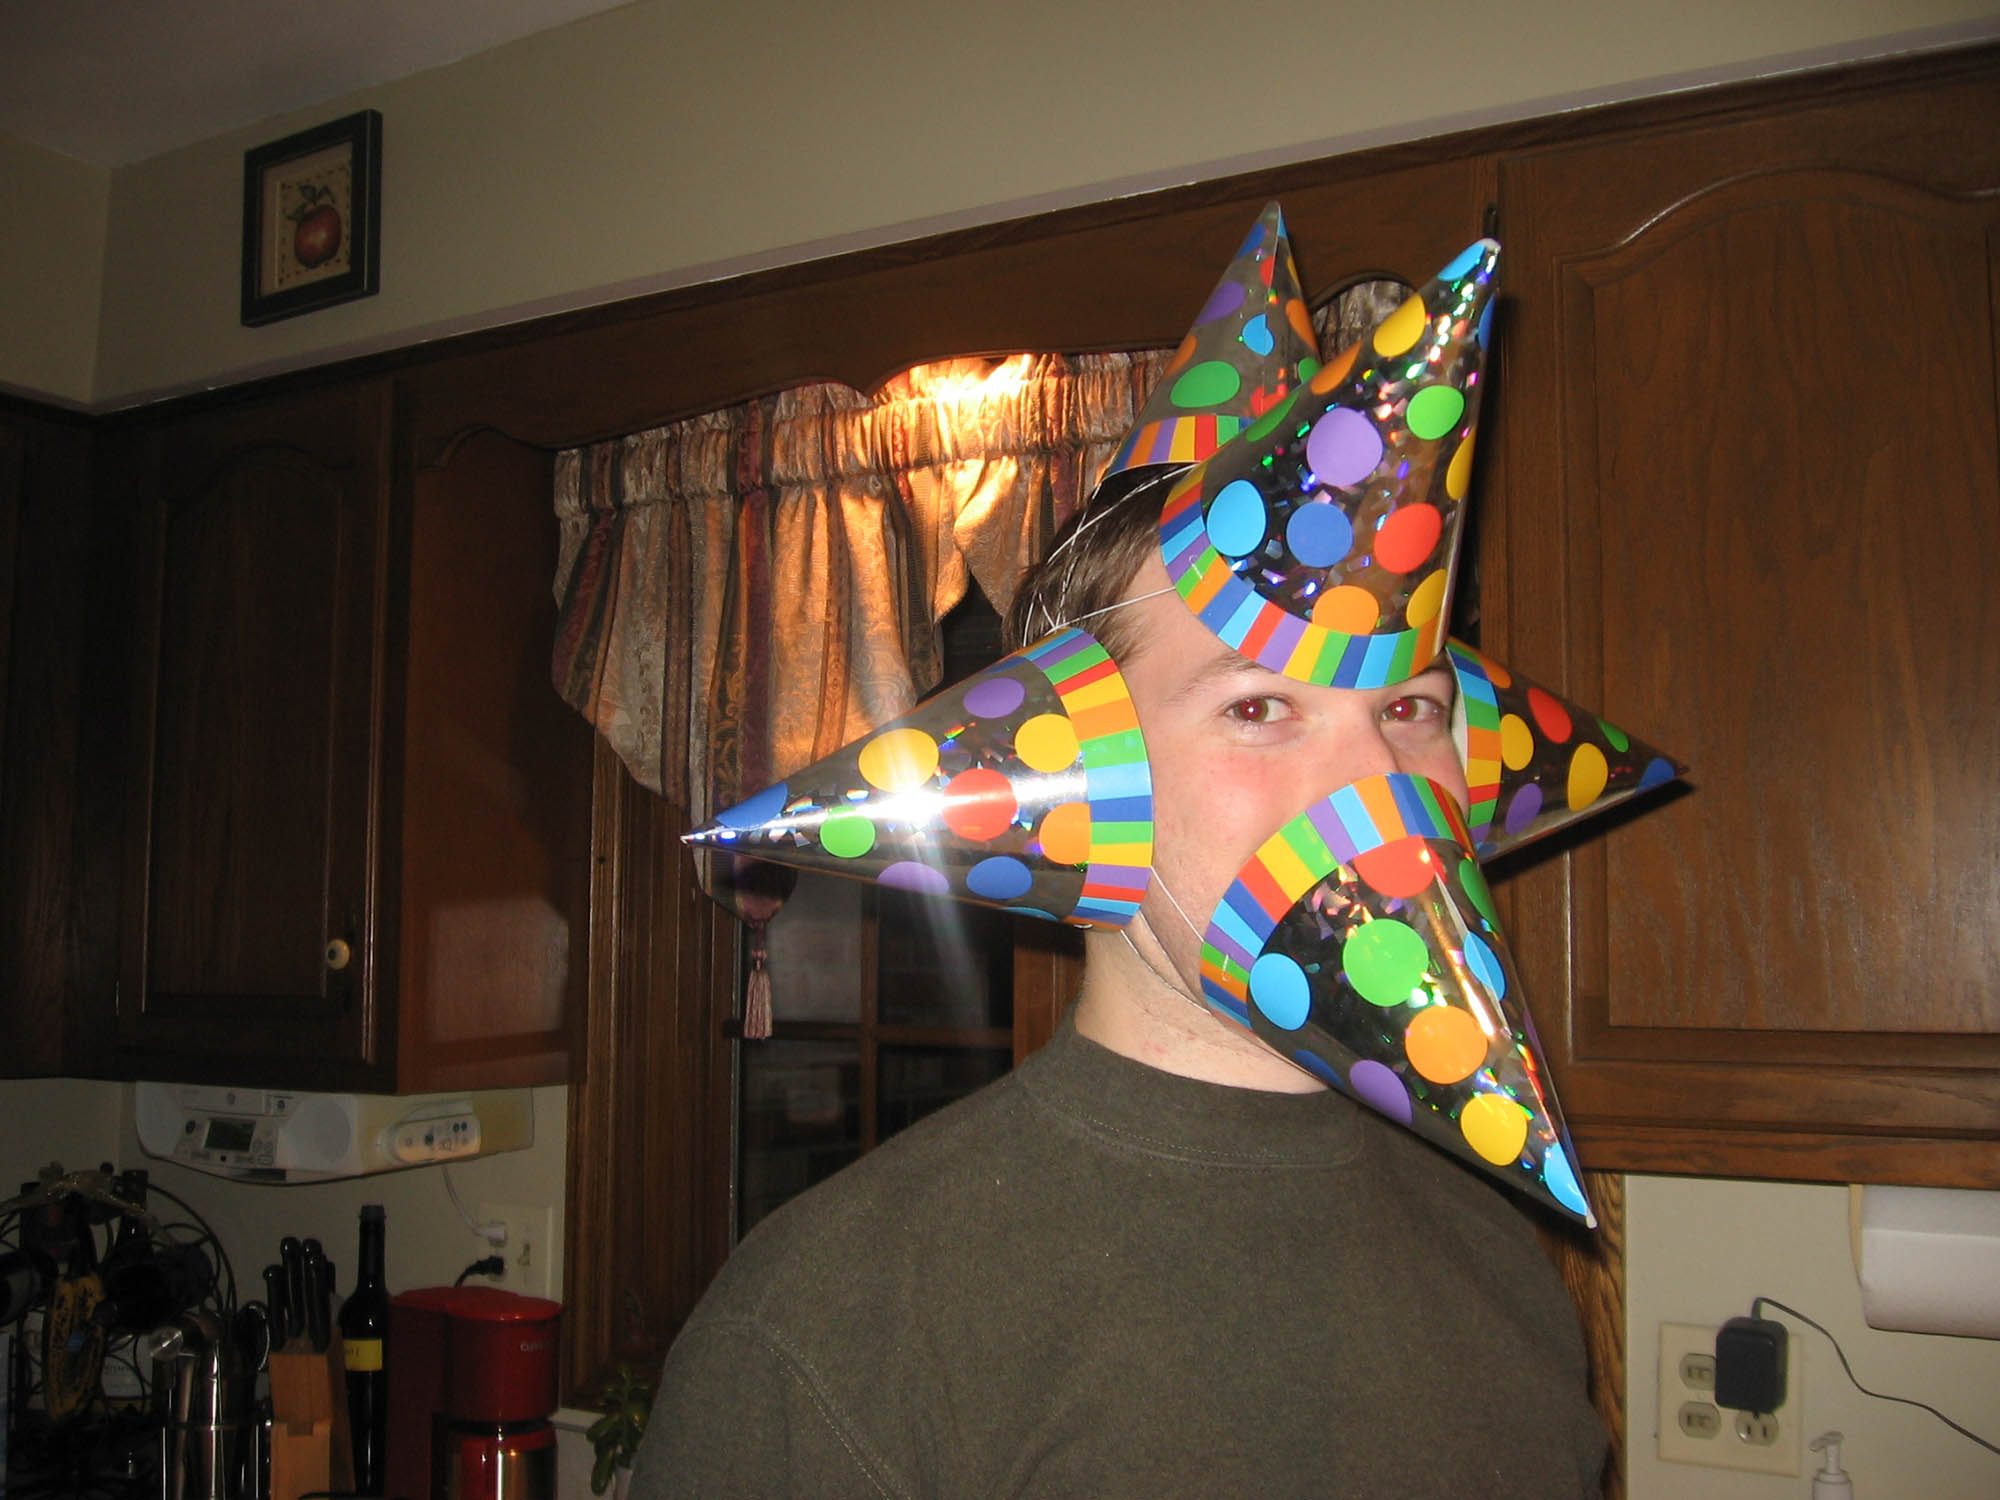 Wearing multiple party hats